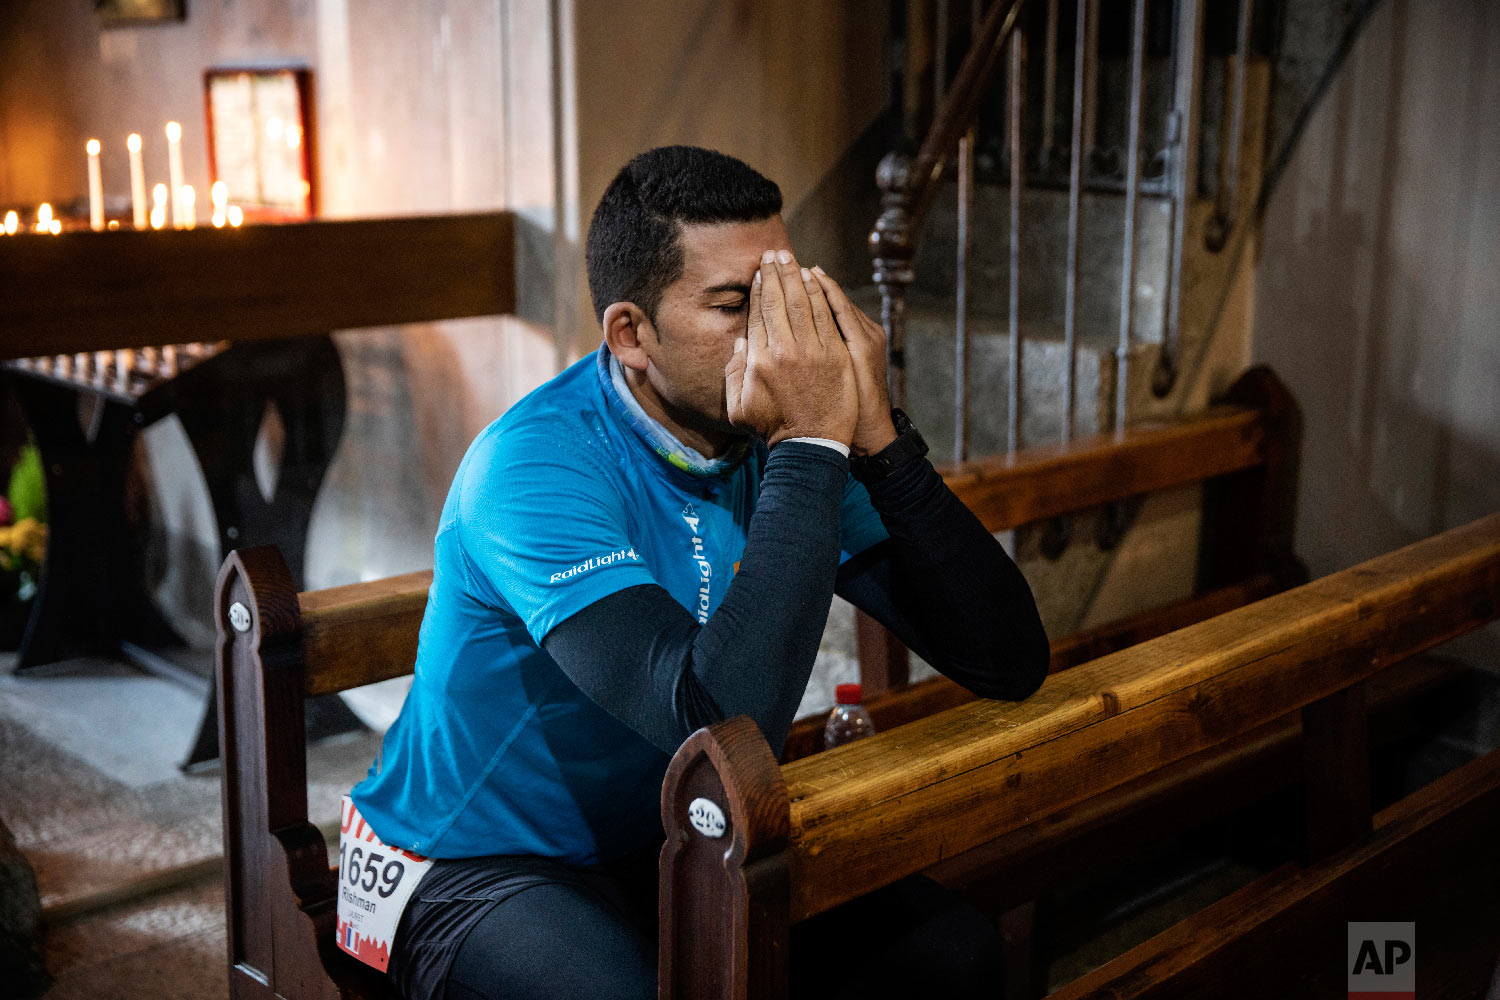 Rishman Lauret of France prays at the Saint Michel church in Chamonix, French Alps, before taking the start of the 170km Ultra-Trail of Mont-Blanc (UTMB) race around the Mont-Blanc, crossing France, Italy and Switzerland, Aug. 31, 2018. (AP Photo/Laurent Cipriani)